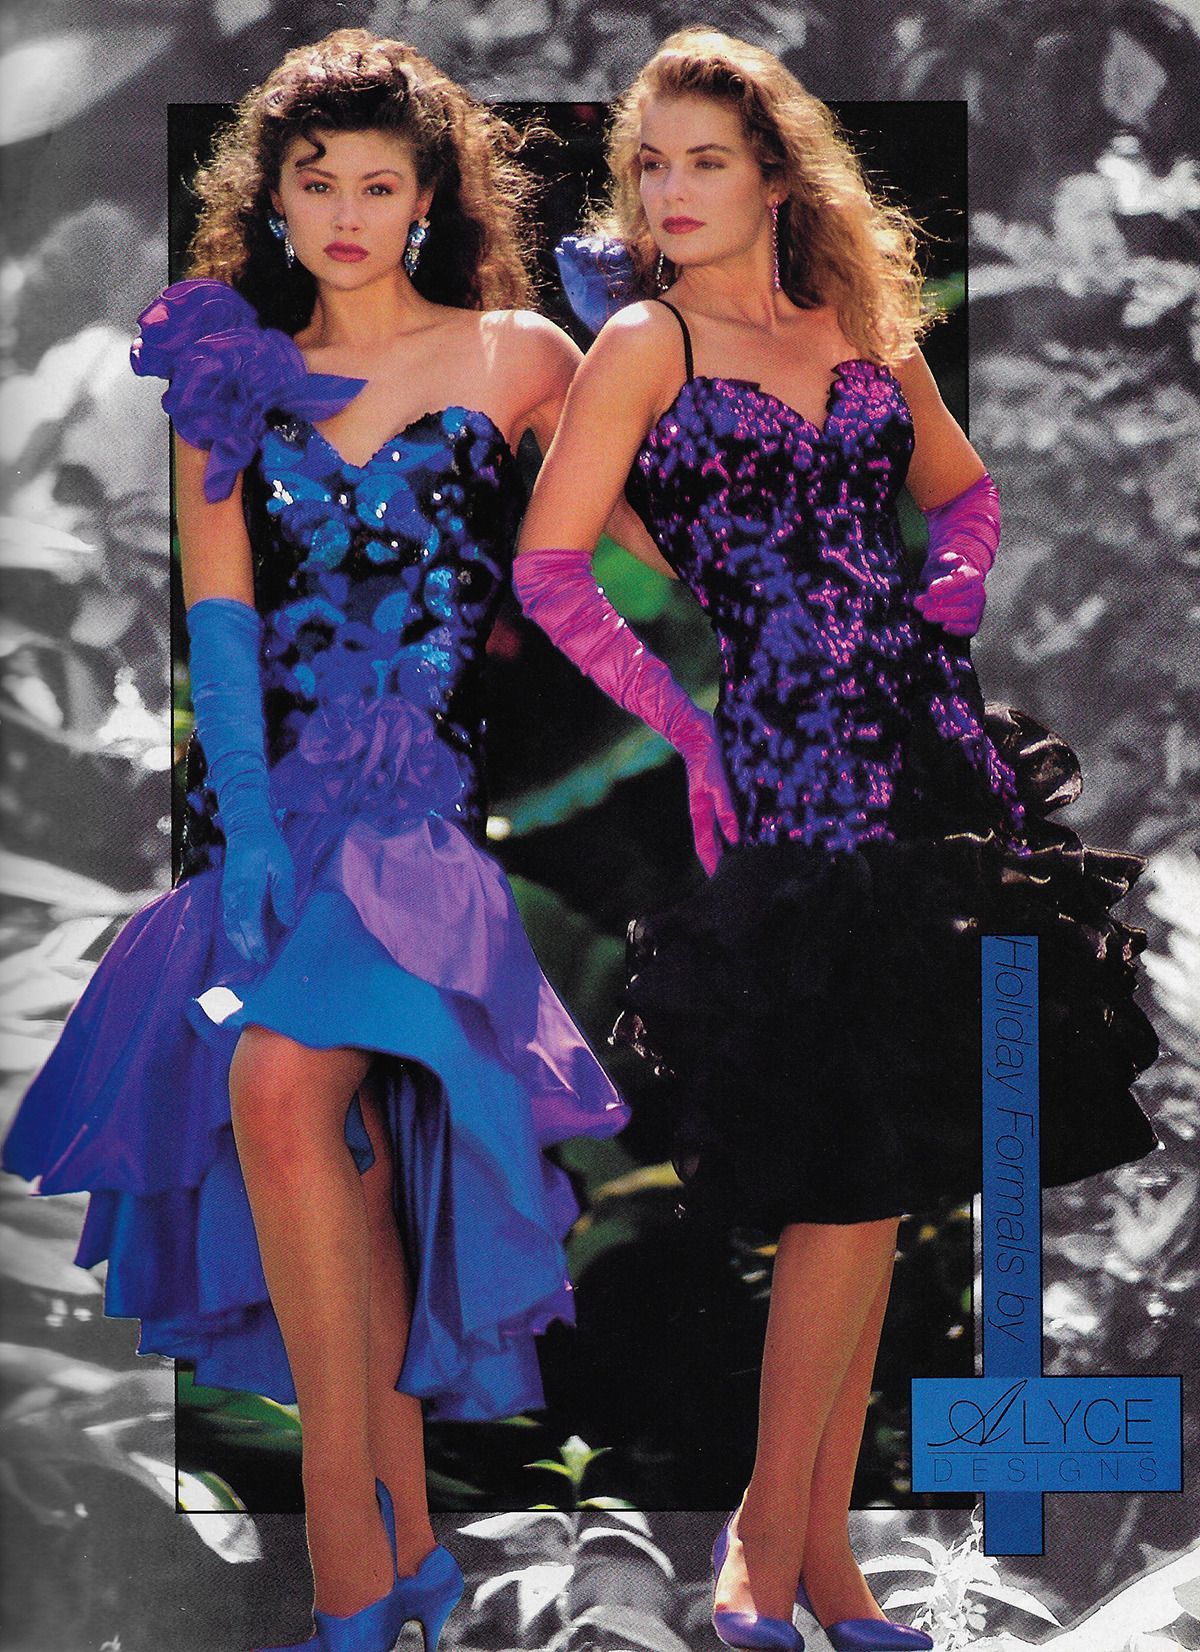 Holiday Formals By Alyce Designs 1990 80s Prom Dress Fashion Show Themes 80s Fashion [ 1652 x 1200 Pixel ]